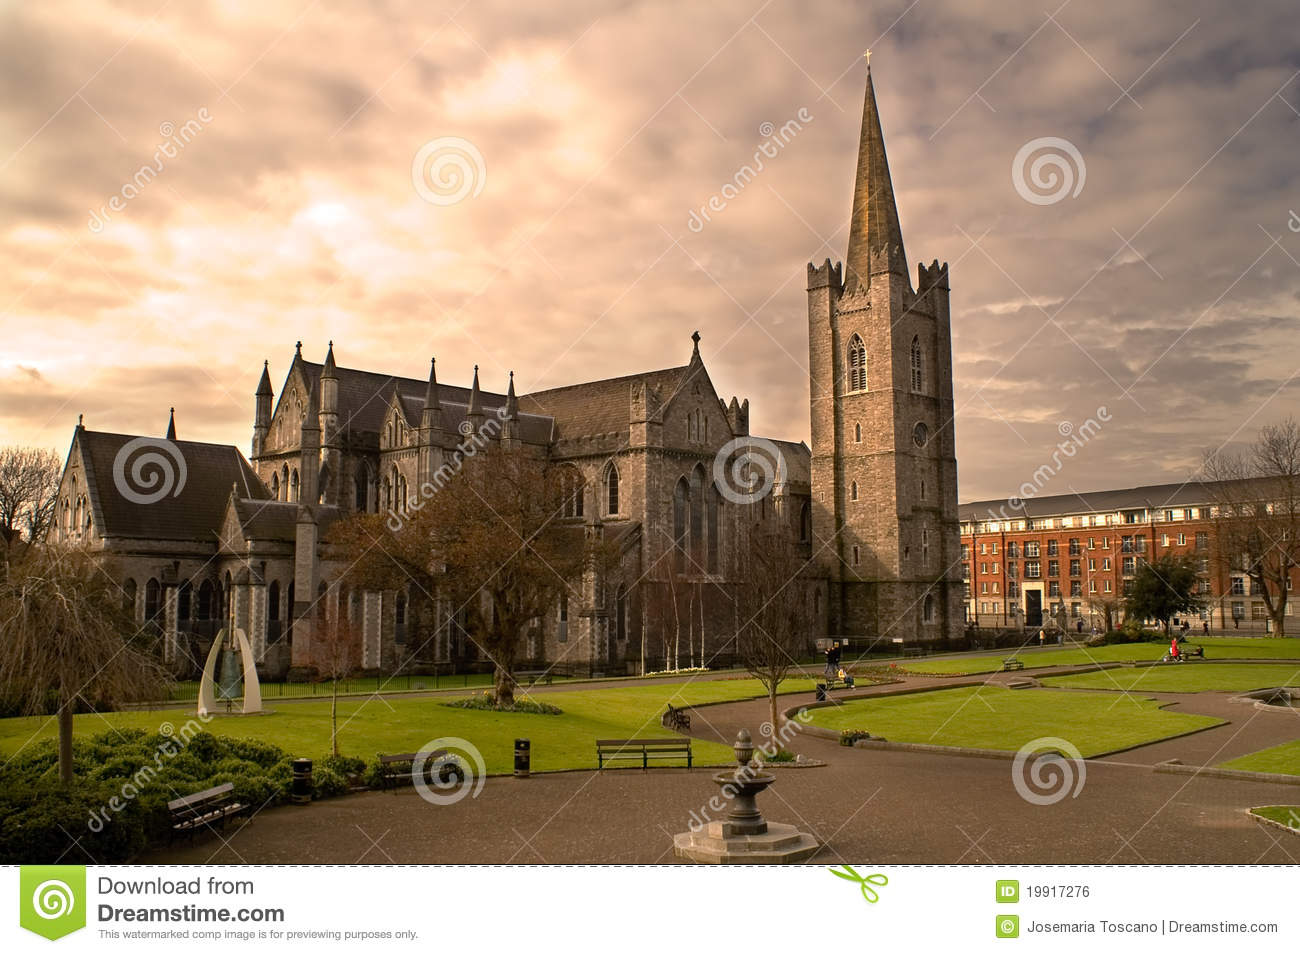 St. Patrick s Cathedral in Dublin, Ireland.